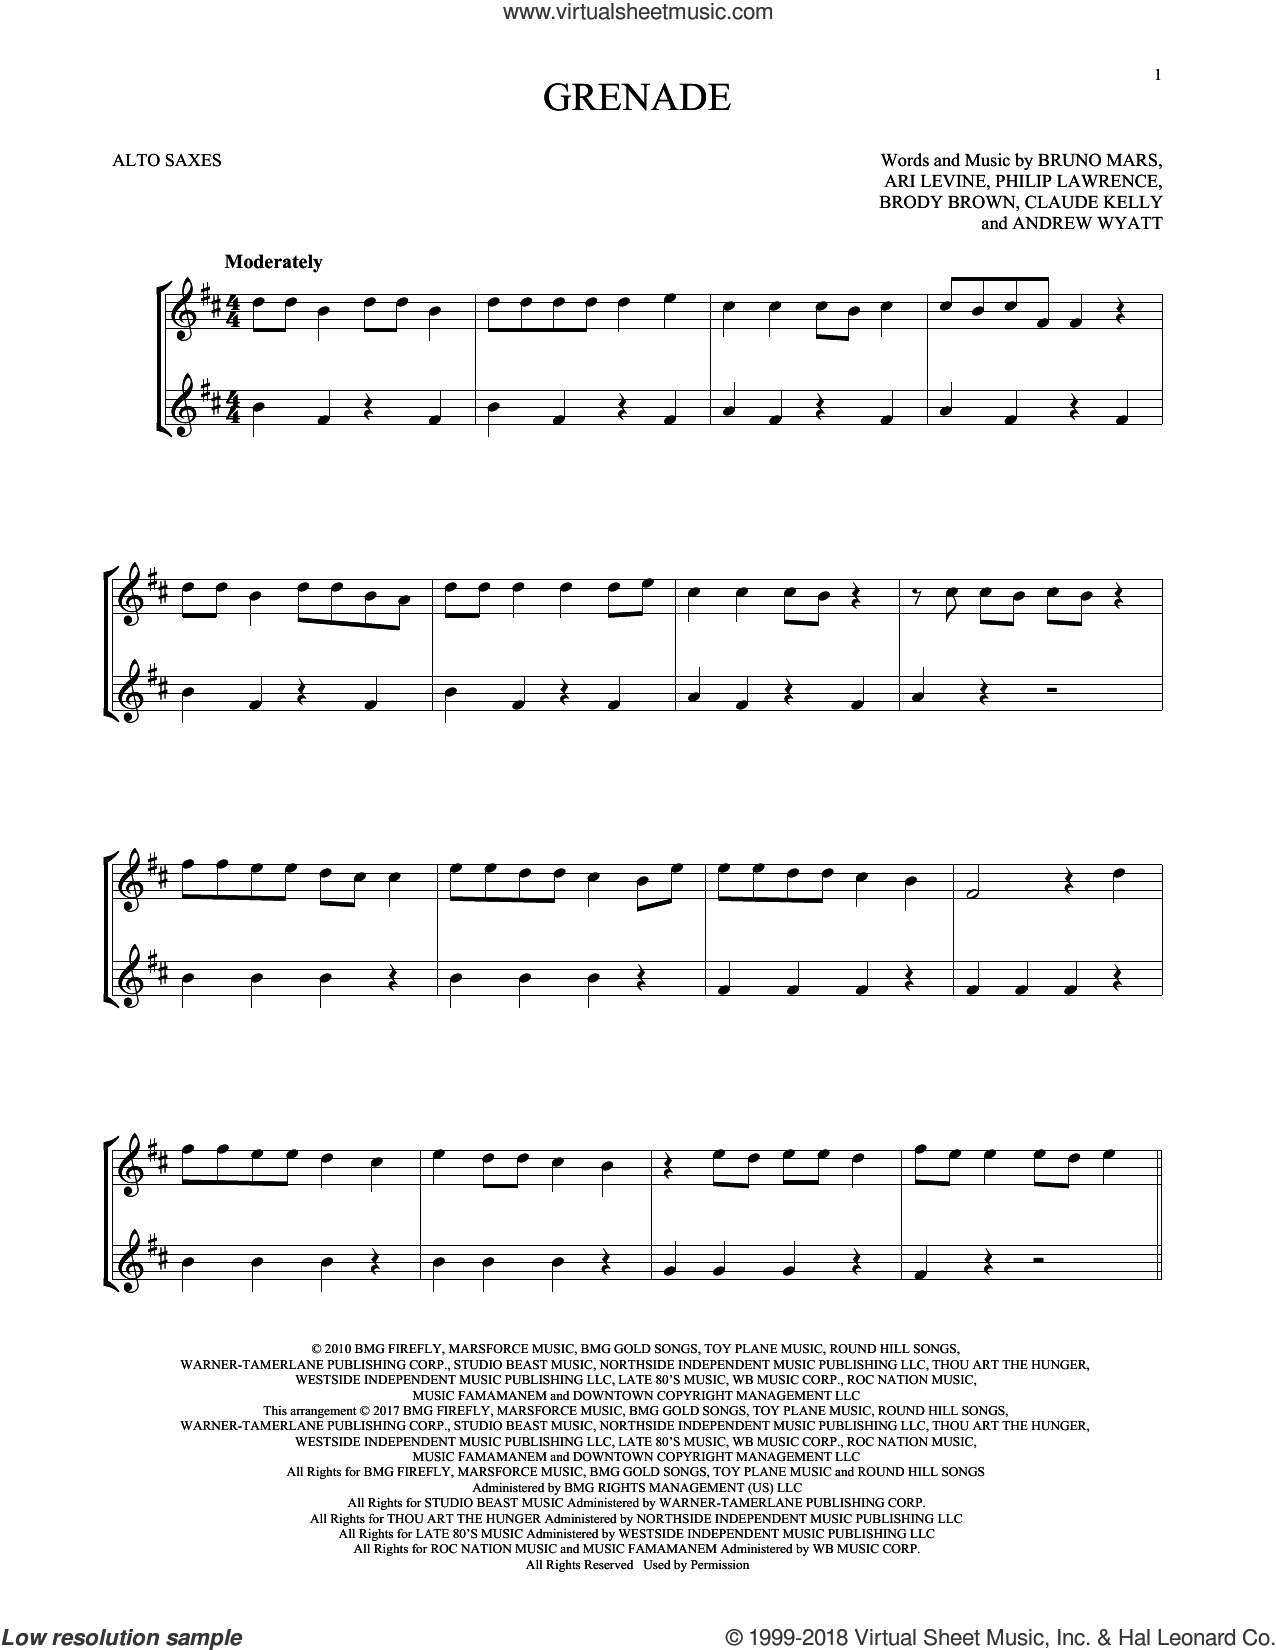 Grenade sheet music for two alto saxophones (duets) by Bruno Mars, Andrew Wyatt, Ari Levine, Brody Brown, Claude Kelly and Philip Lawrence, intermediate skill level